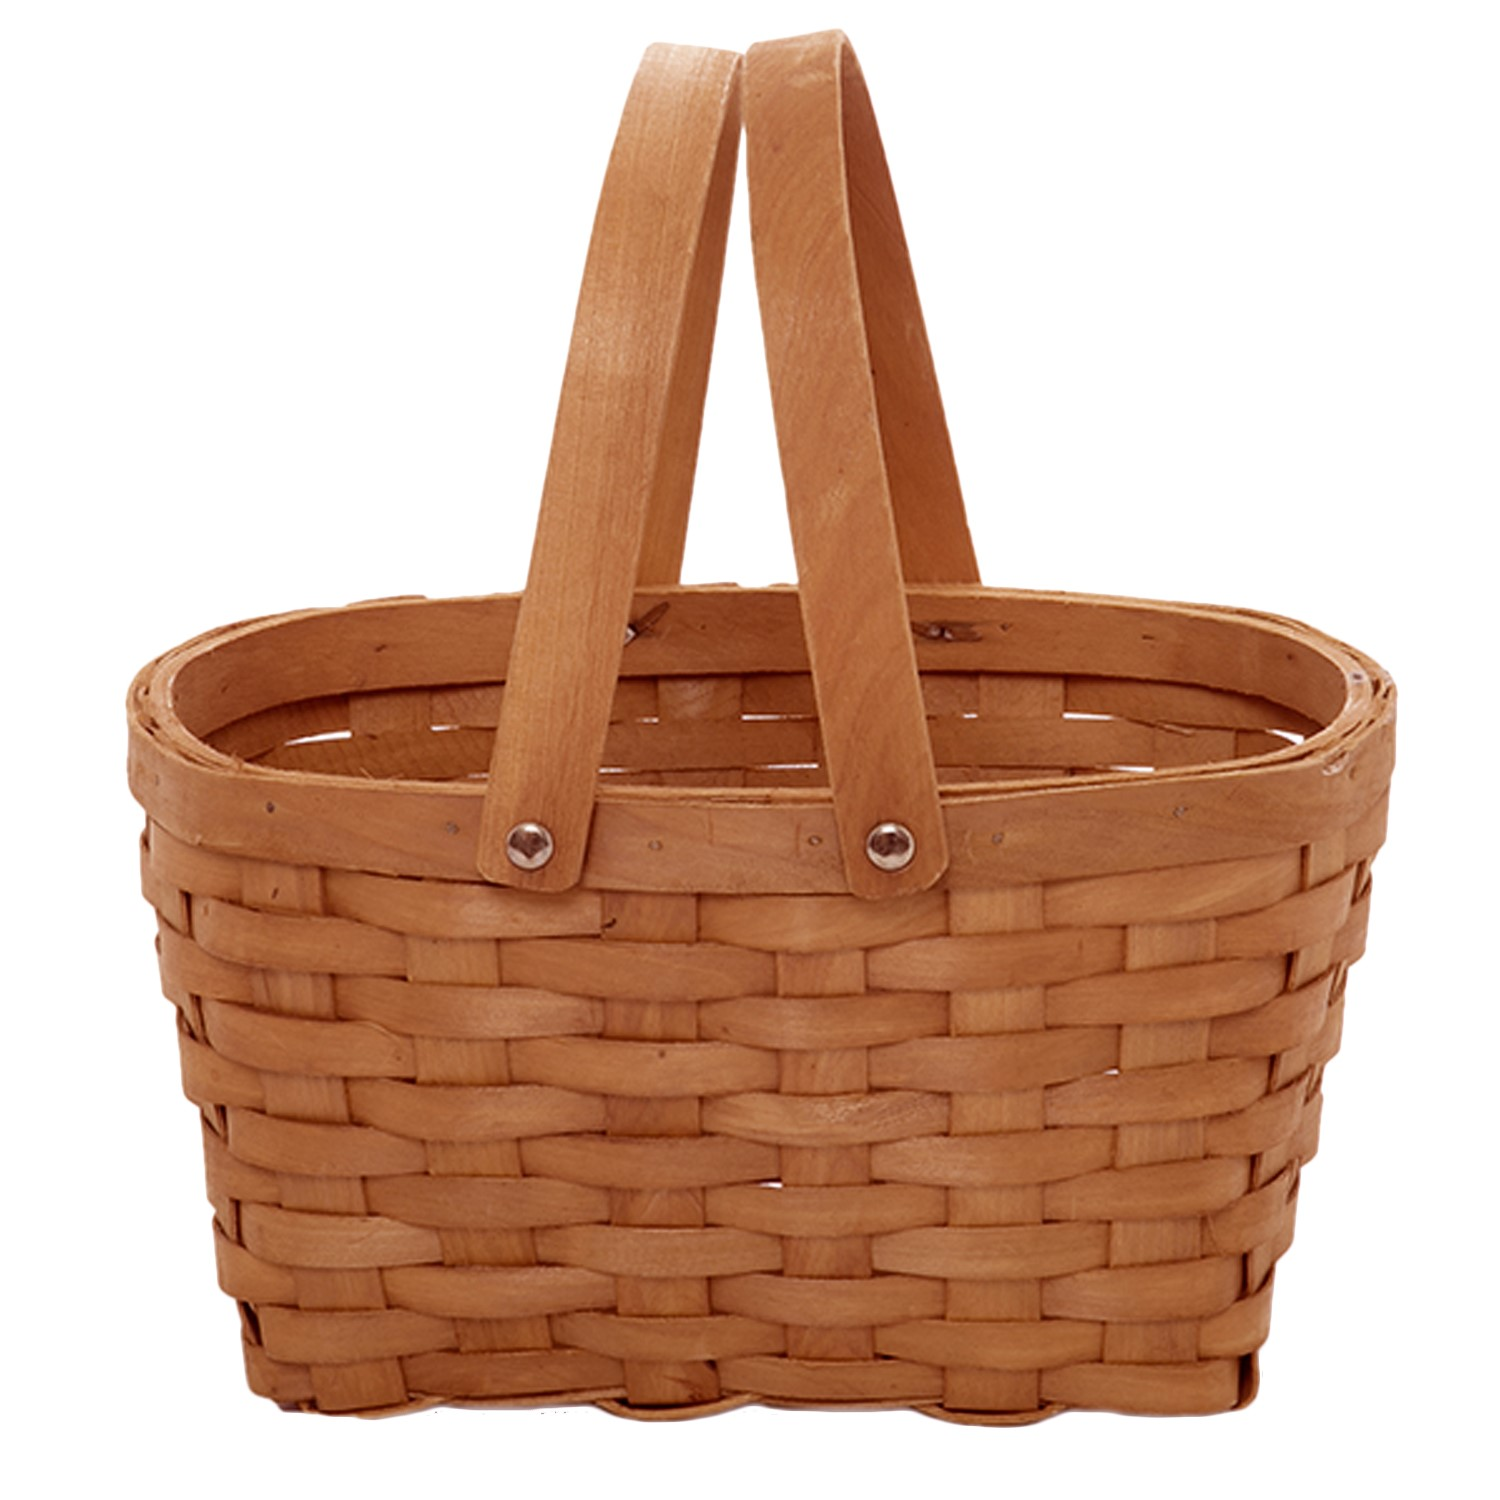 Classic Woodchip Weave Oblong Swing Handle Basket 10in